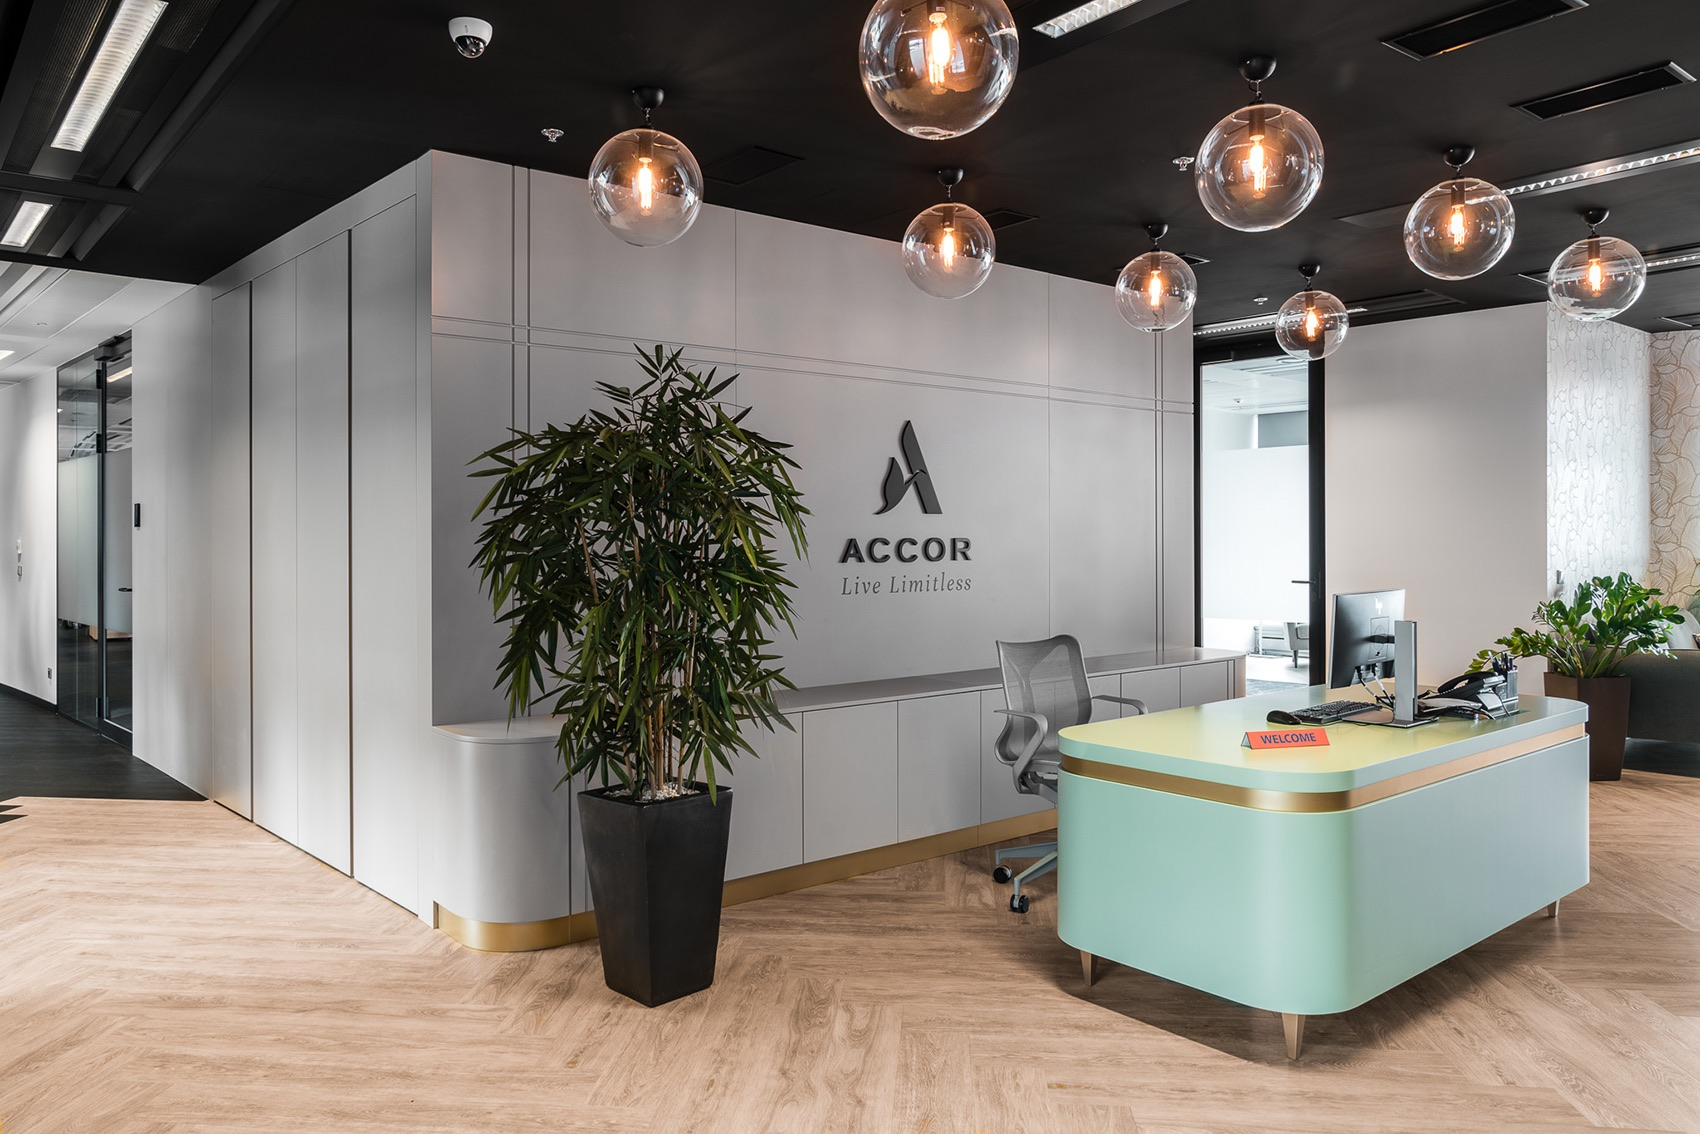 A Look Inside Accor & Orbis' Modern Warsaw Office